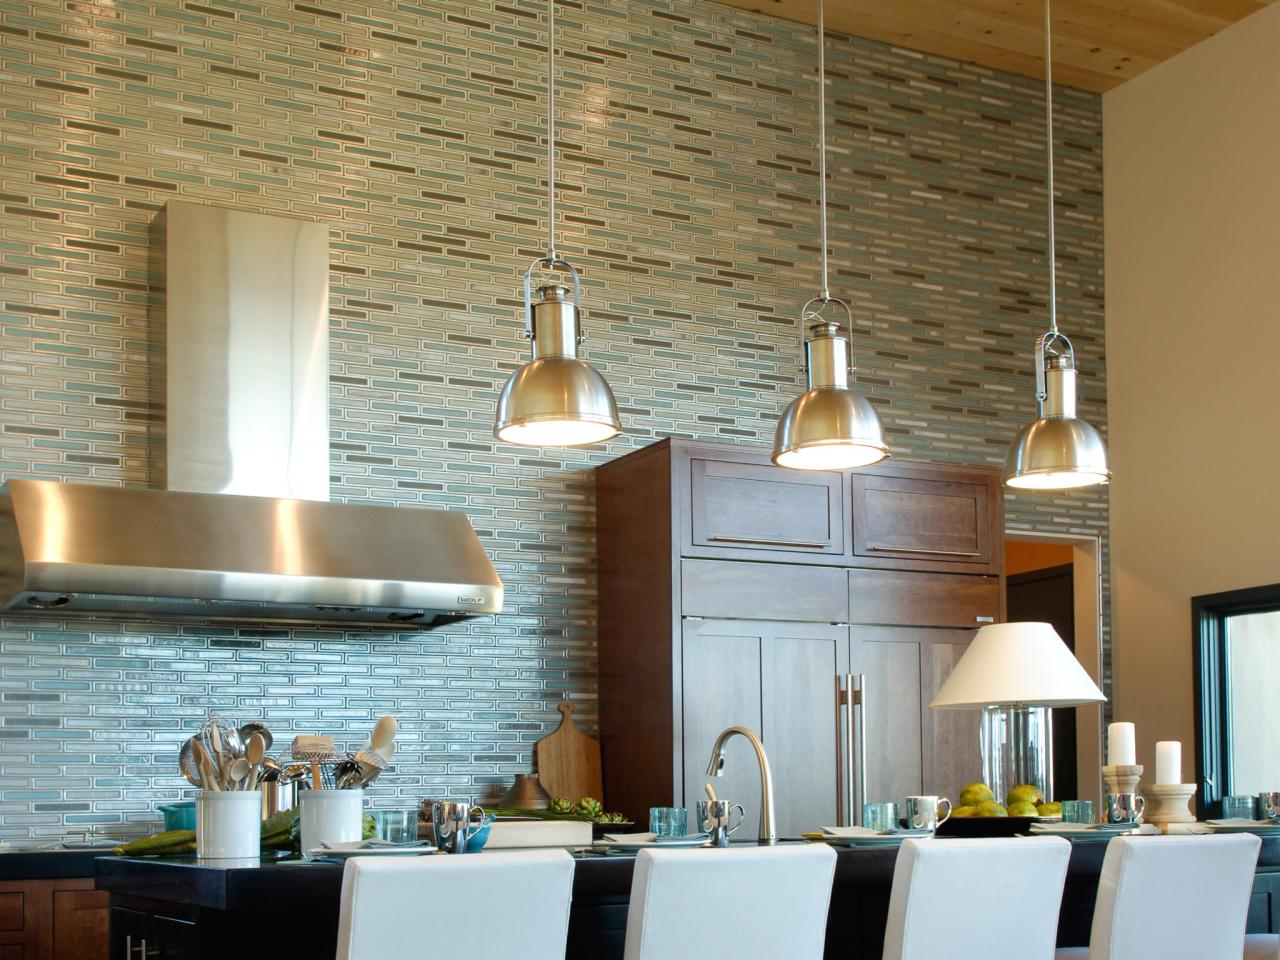 Favorite 75 Kitchen Backsplash Ideas for 2018 (Tile, Glass, Metal etc.) GQ82